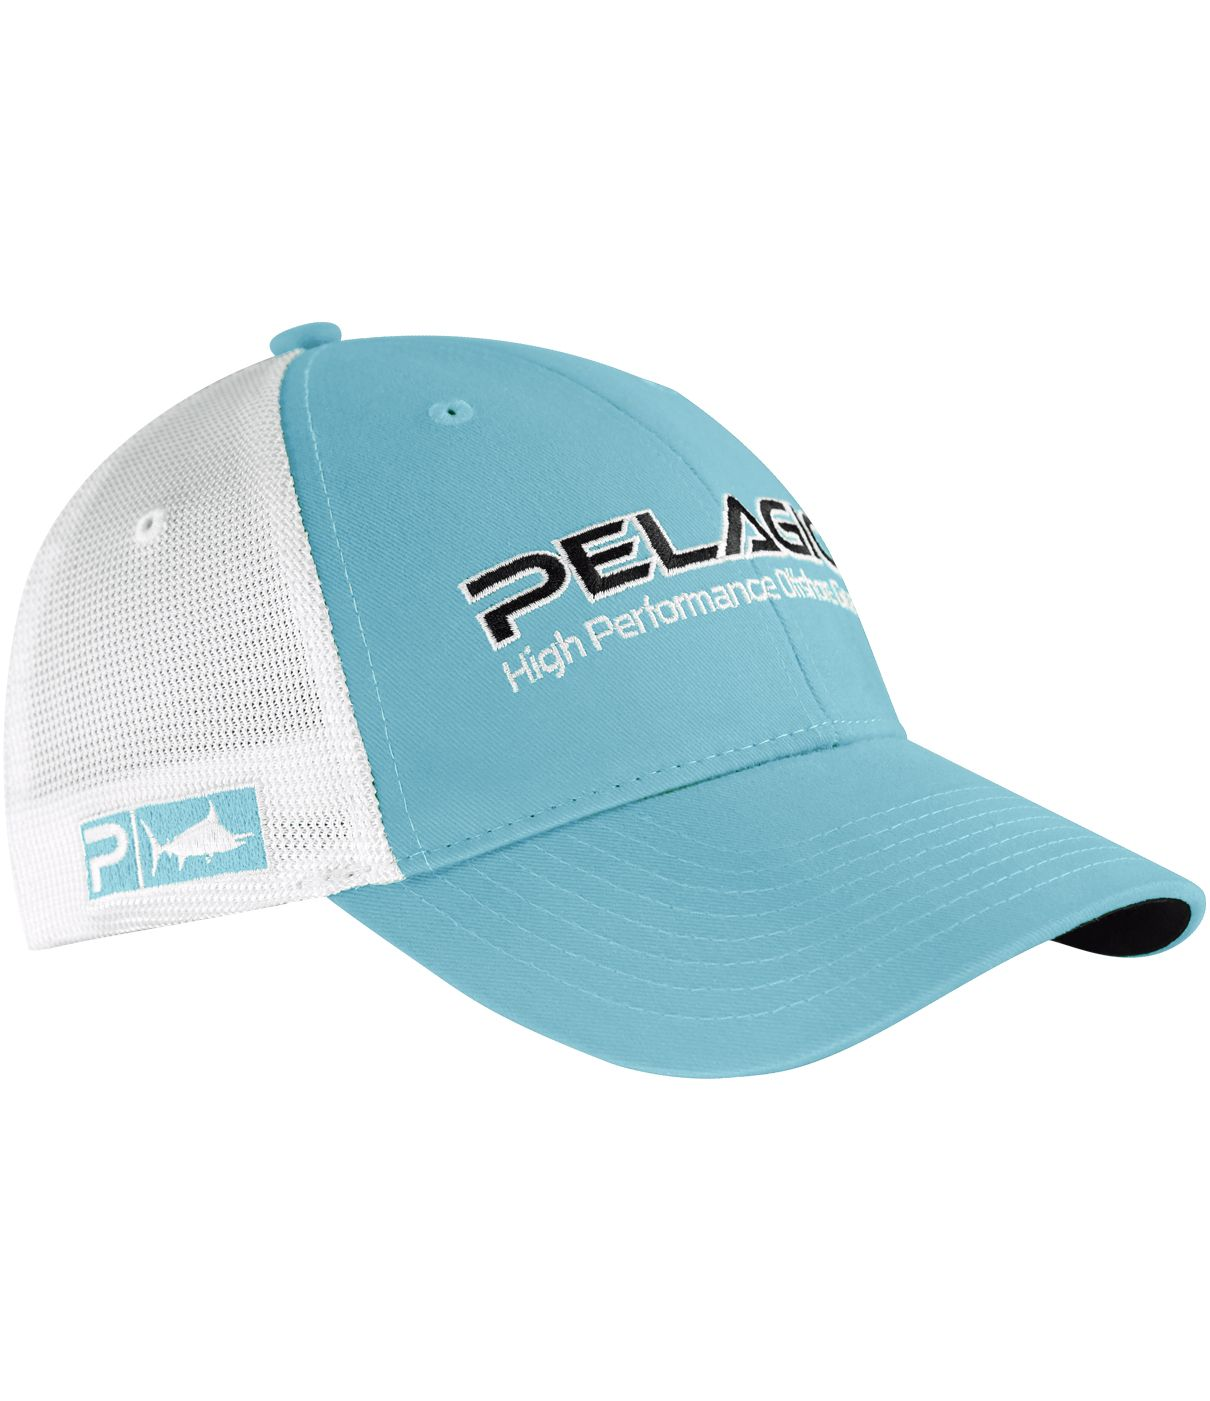 39f60f4feae0a Pelagic Offshore Cap - Solid Light Blue - Fishing s Finest